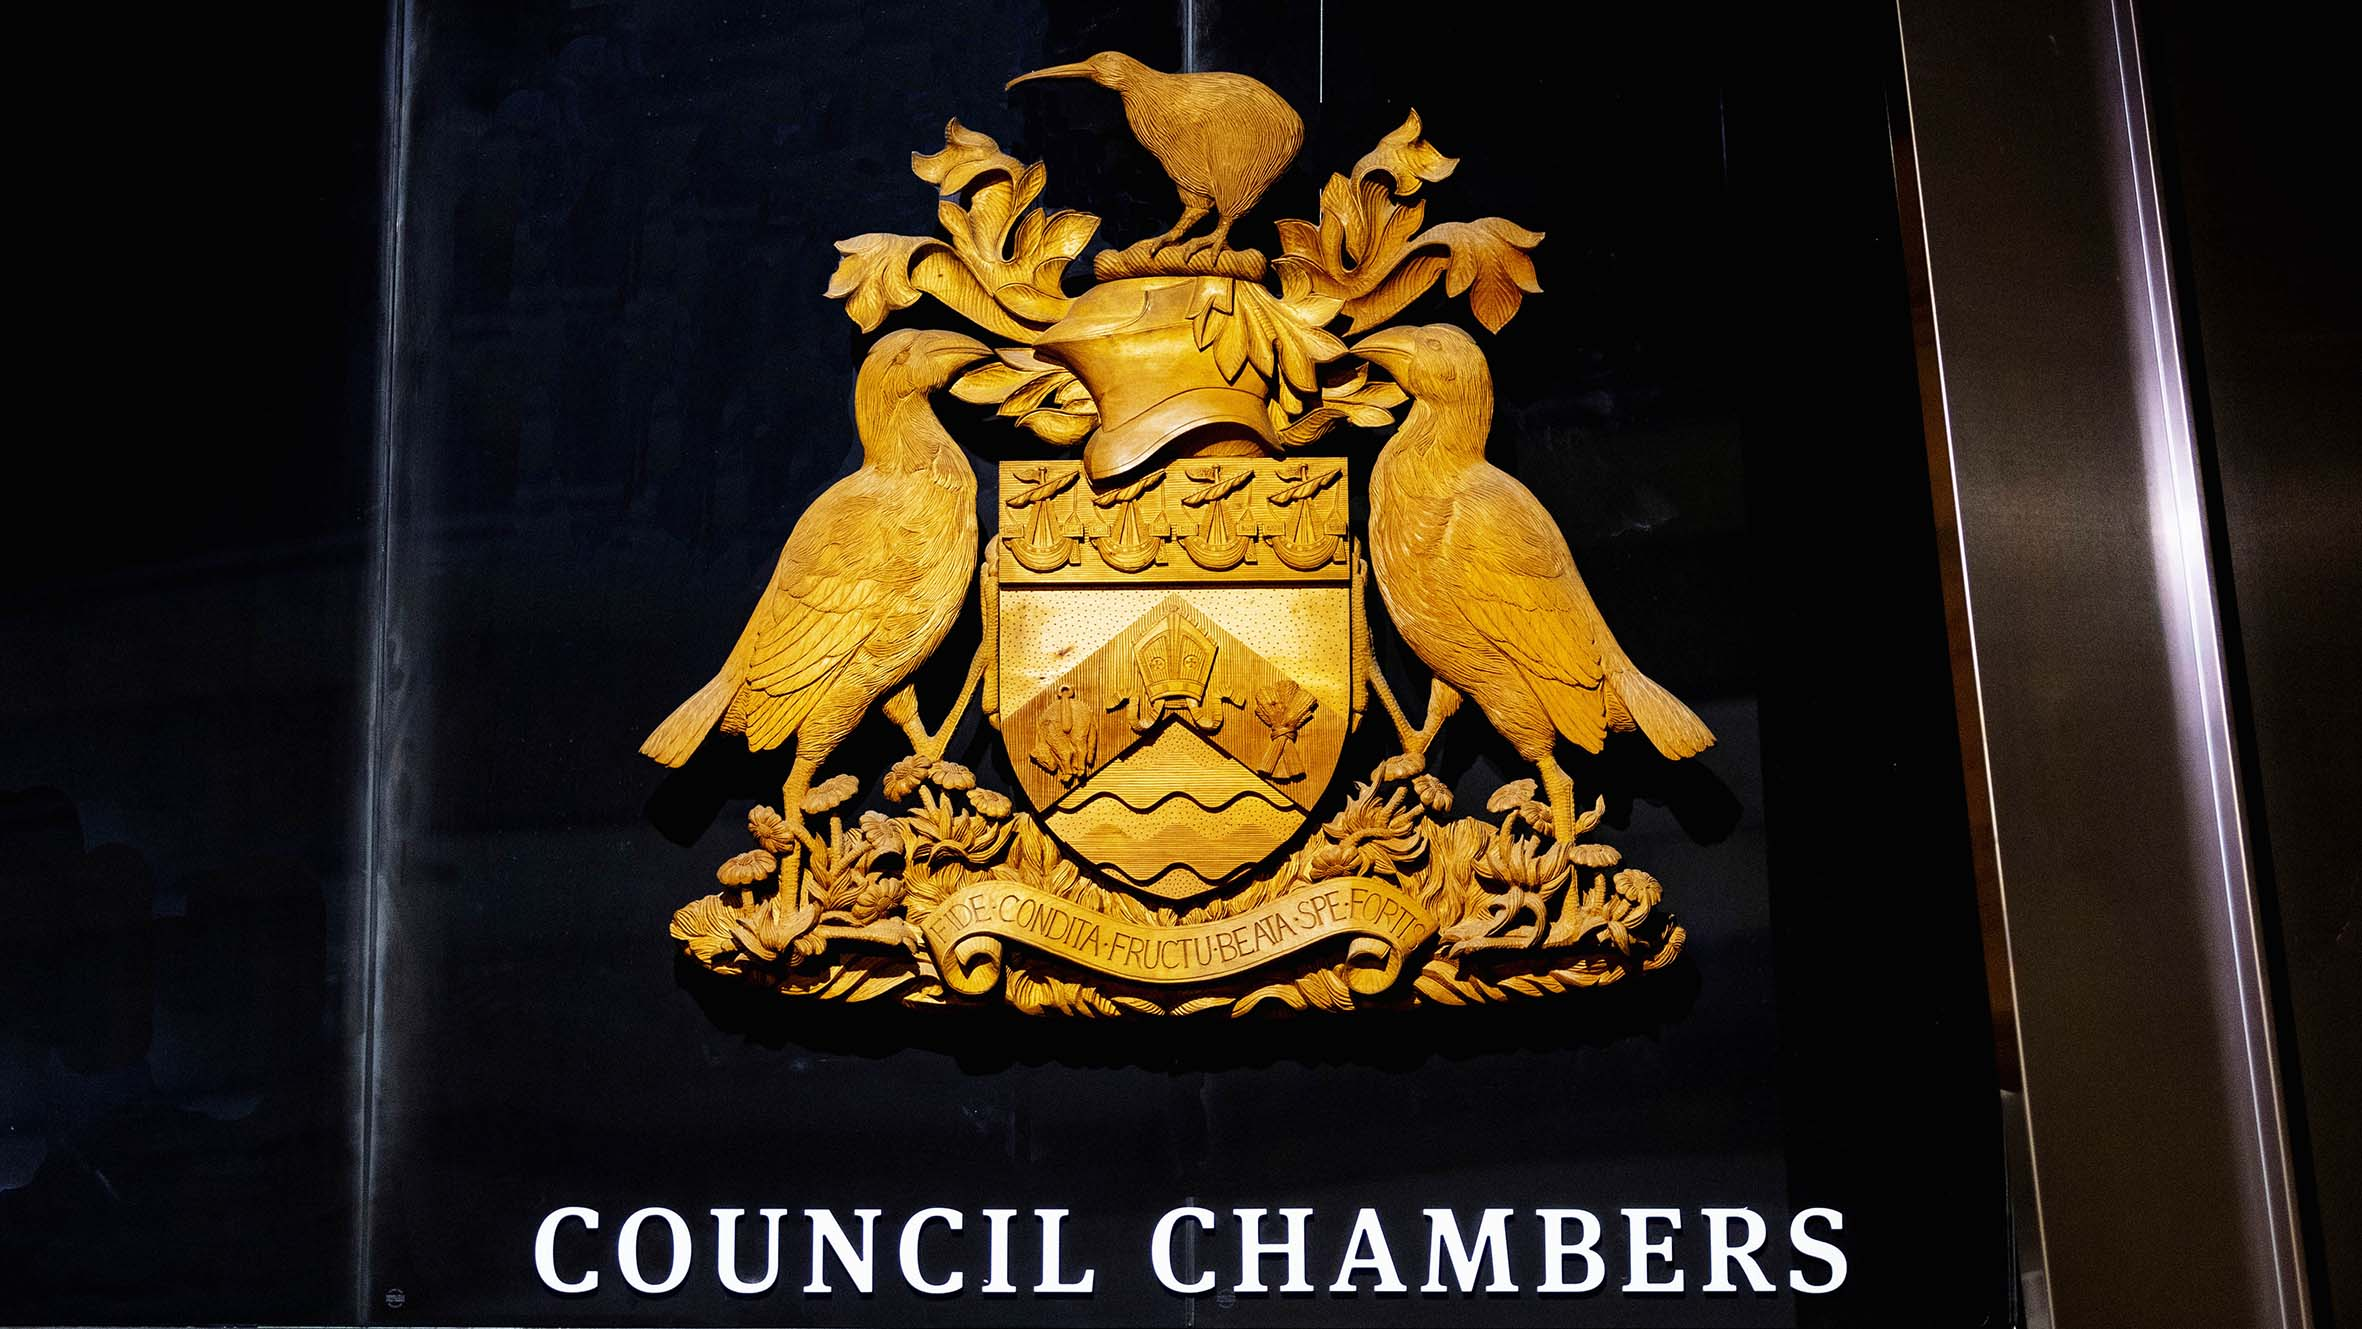 169 LOGO-ccc-chambers-council